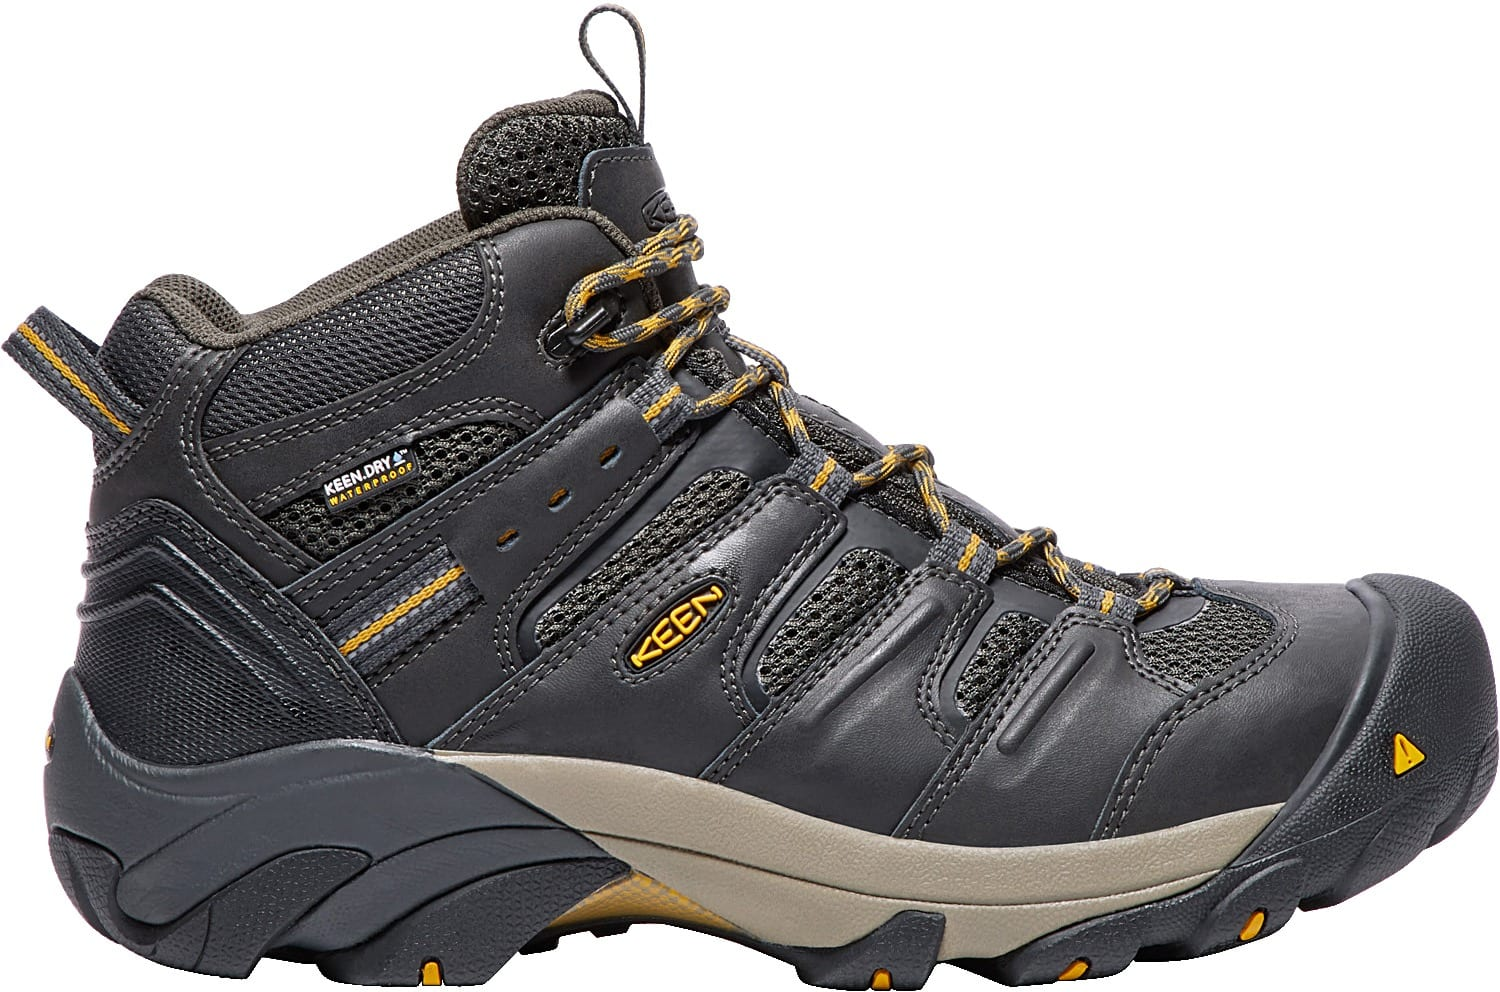 Keen Lansing Mid Wp 1019322 Csa Steel Toe Boots Boots Boots